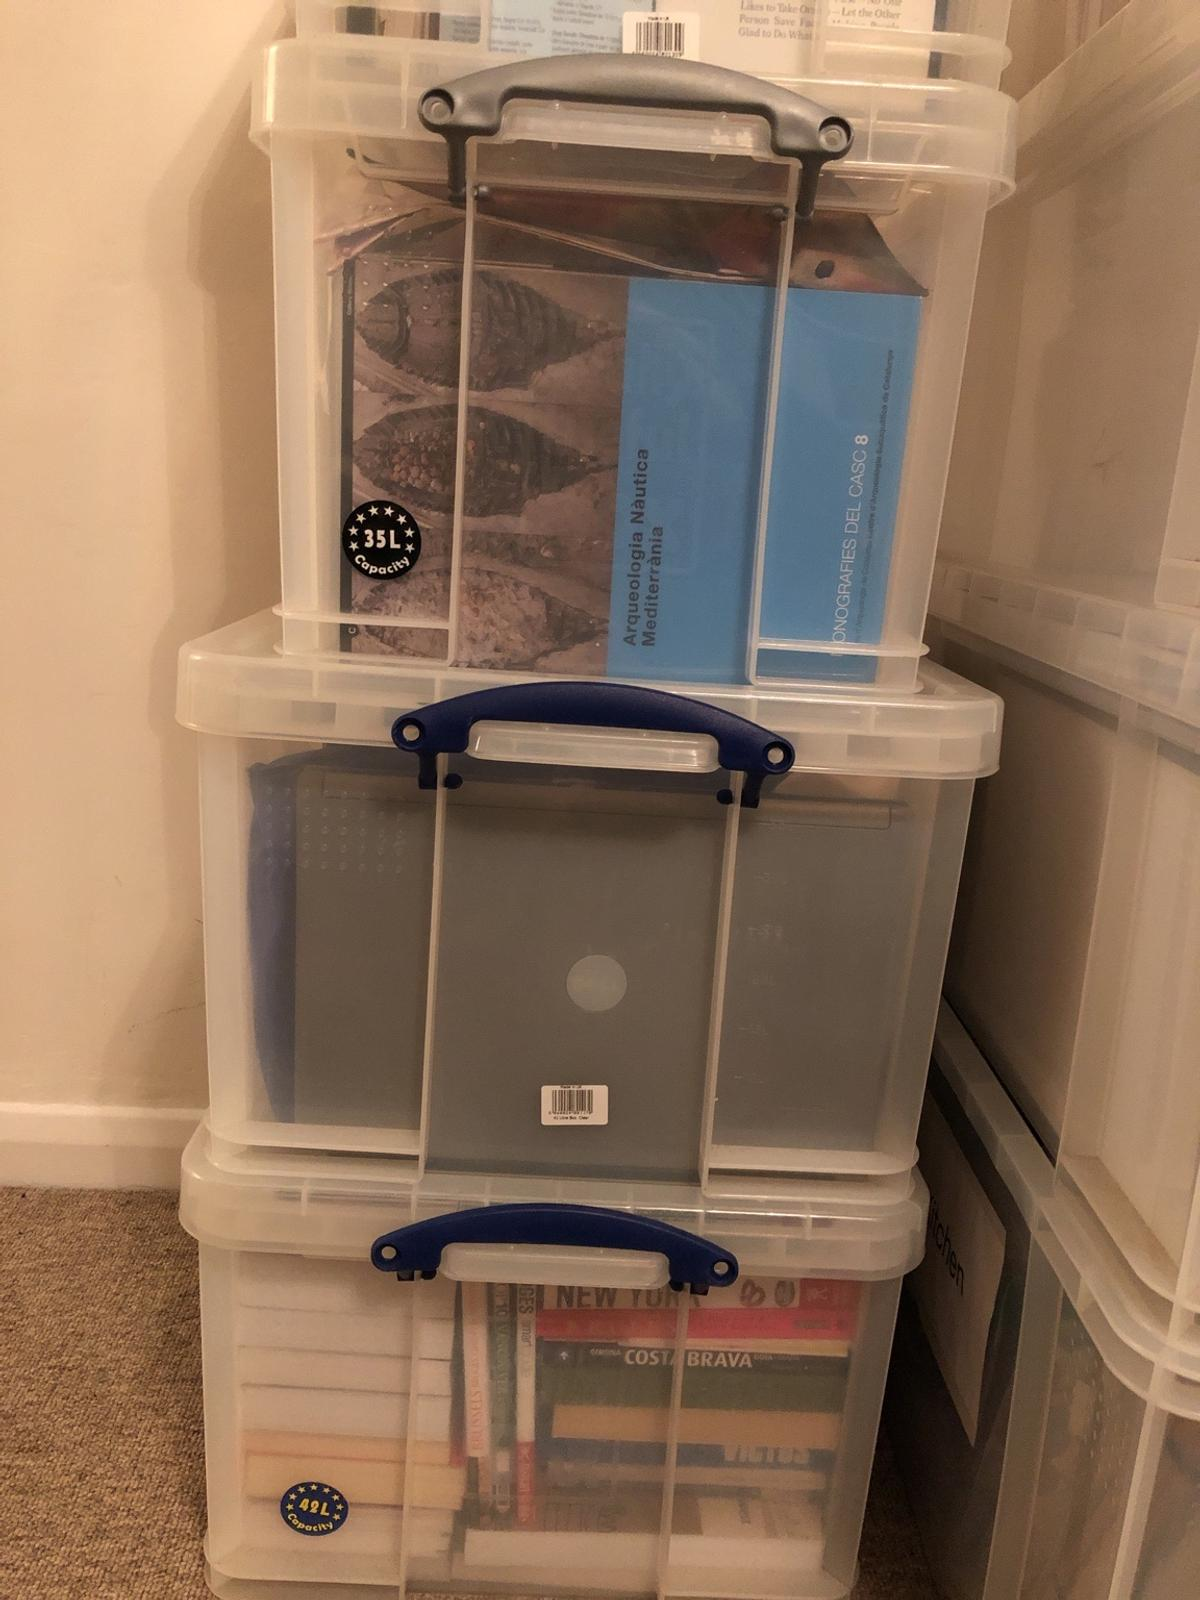 Selling a total of 8 strong used plastic boxes of 3 different sizes.  2 x 35 litres 3 x 42 litres 3 x 64 litres  They are full of my stuff but I will empty them if I sell them.  I also sell 8 strong cardboard boxes large size perfect for bulky light stuff and small size perfect for books (it's not too heavy when full). Only used once.